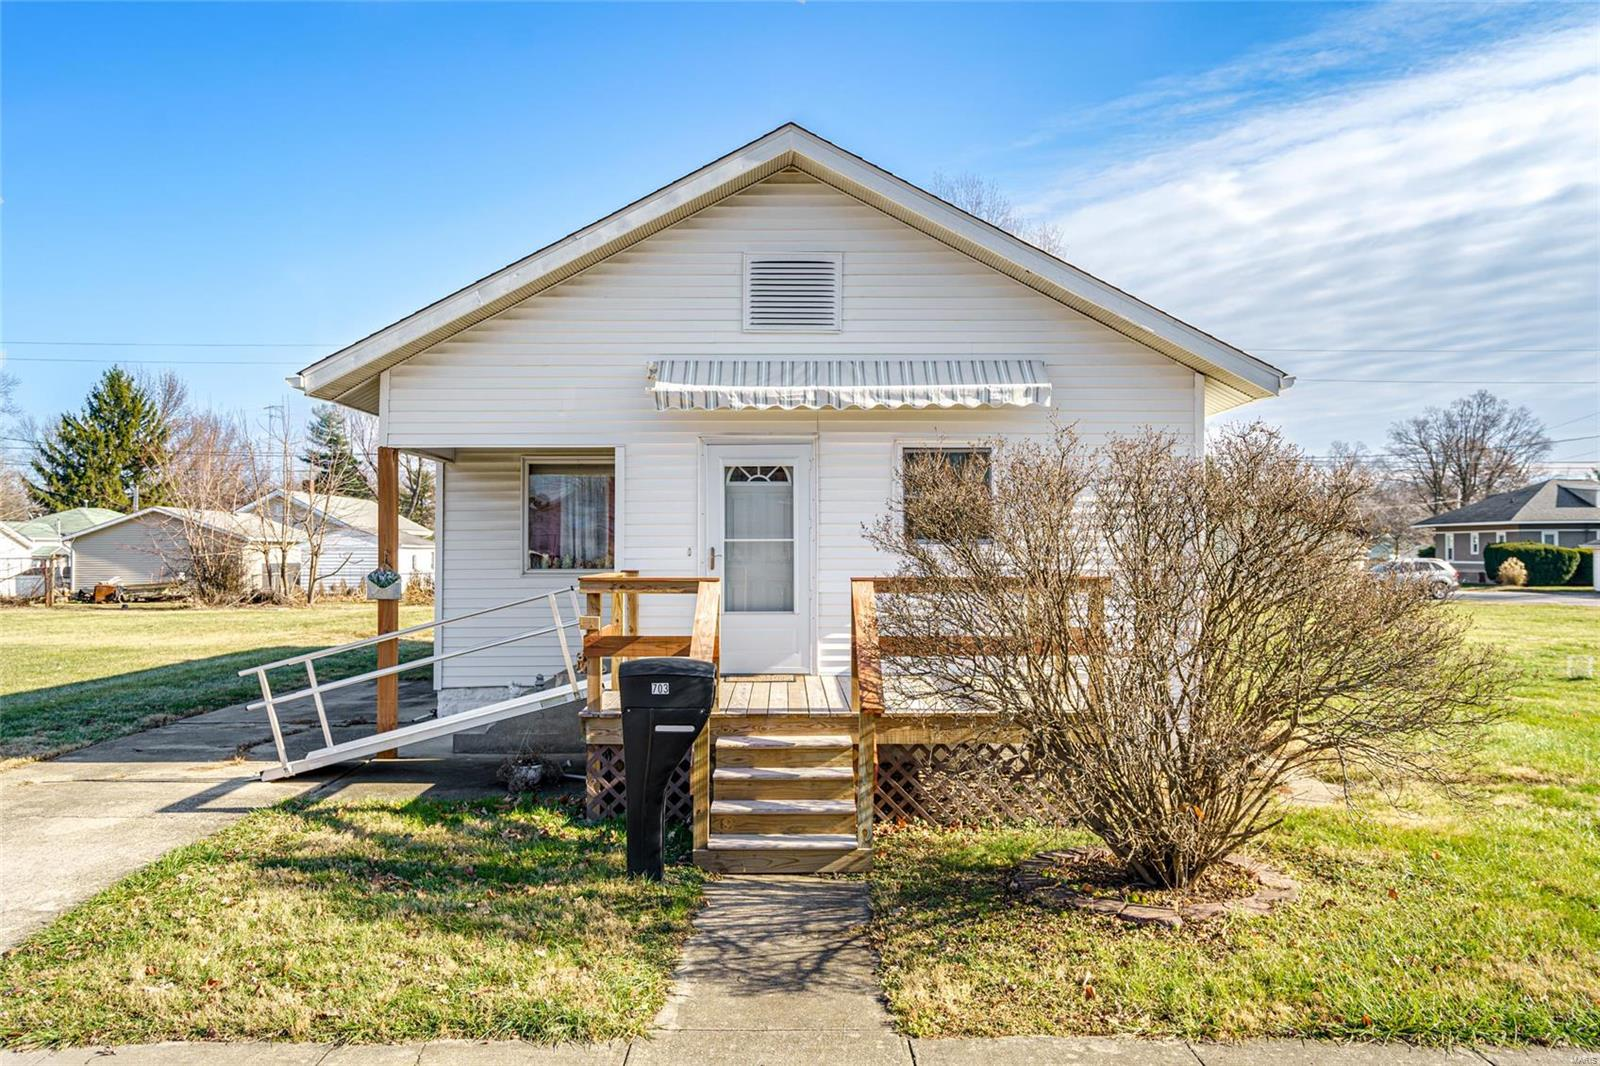 703 N Adams Street Property Photo - Gillespie, IL real estate listing